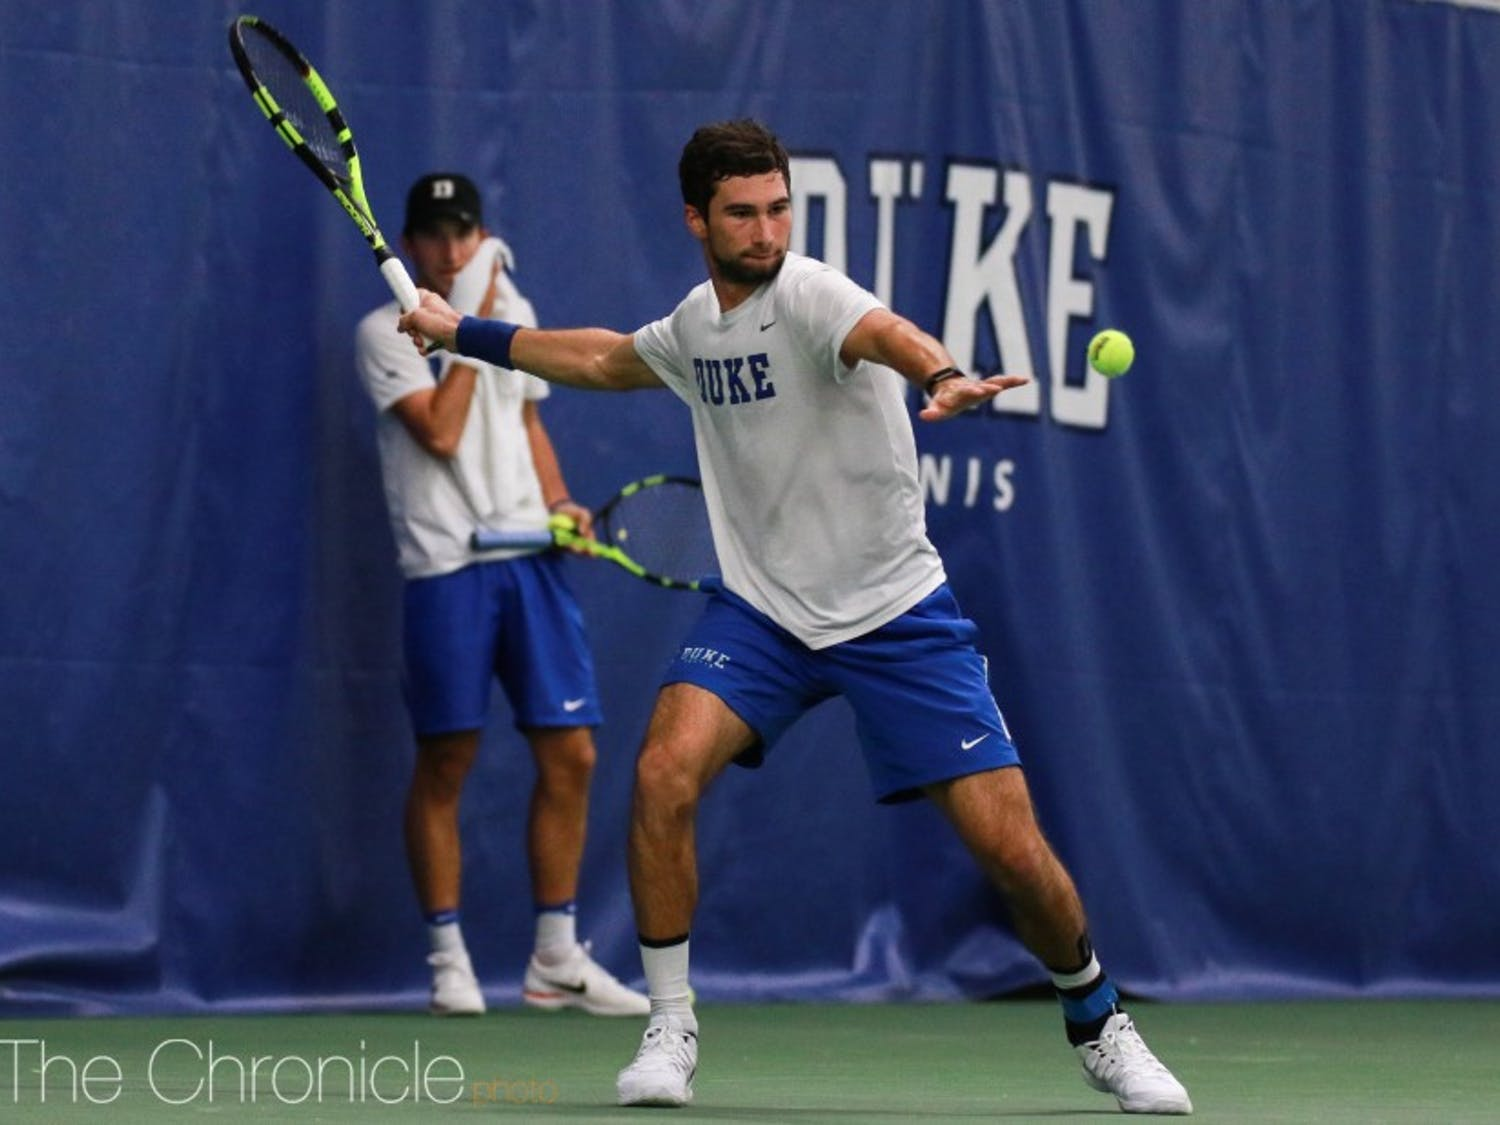 Catalin Mateas spent most of his time in the second singles position last season.